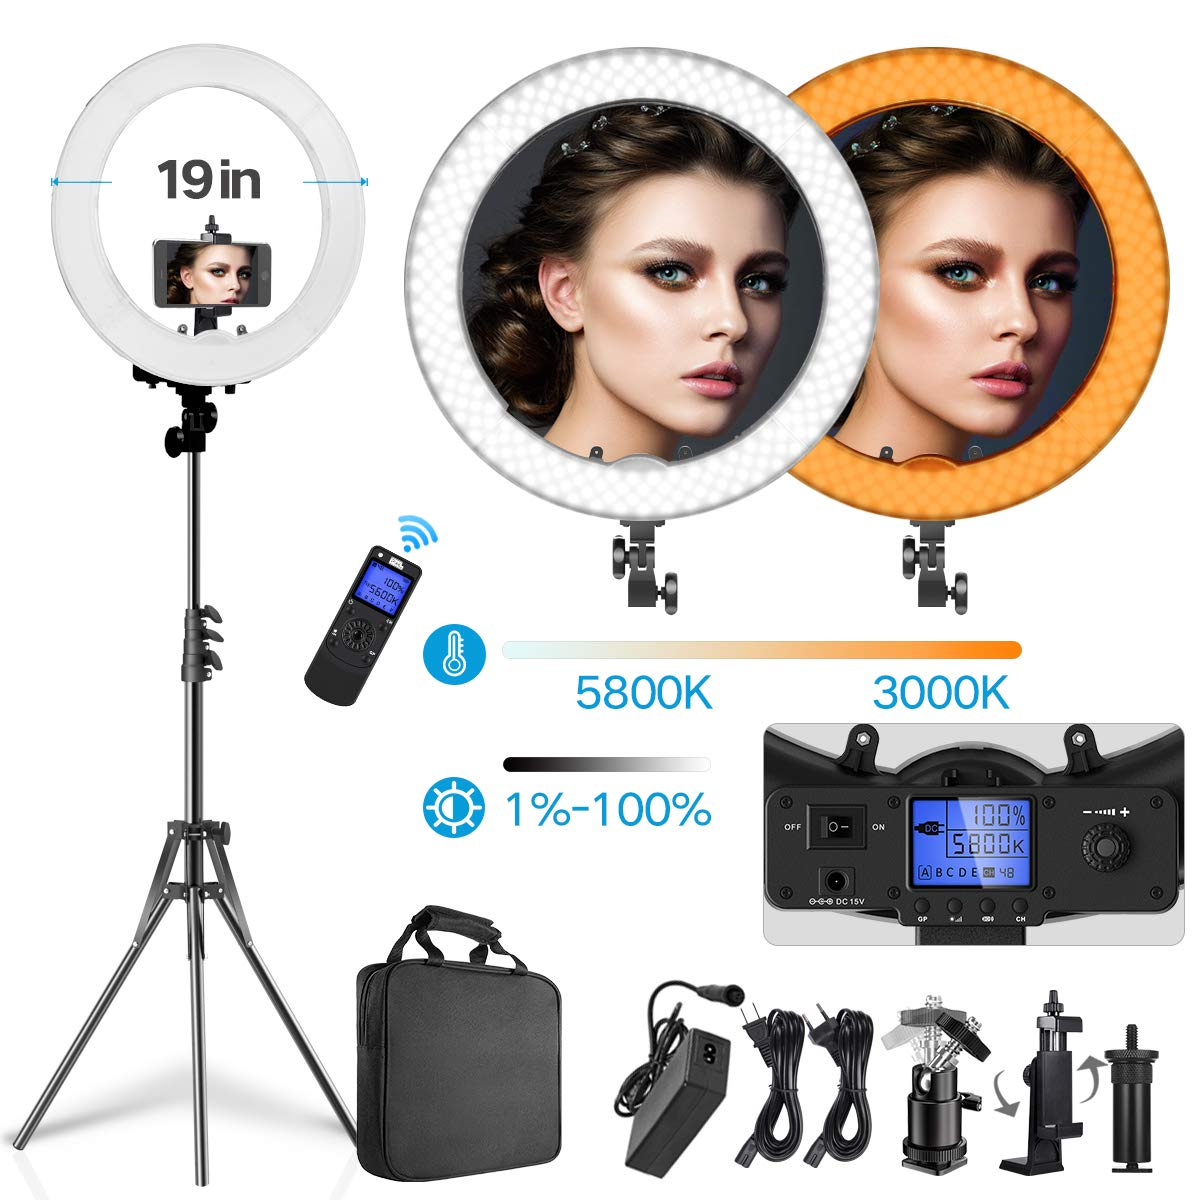 Pixel Ring Light kit - 19 inch 55W 3000-5800K Dimmable Bi-Color LED Ring Light with Stand, Carrying Bag for Camera, Smartphone, YouTube, Self-Portrait Shooting, Makeup, Photography, Live Streaming by PIXEL